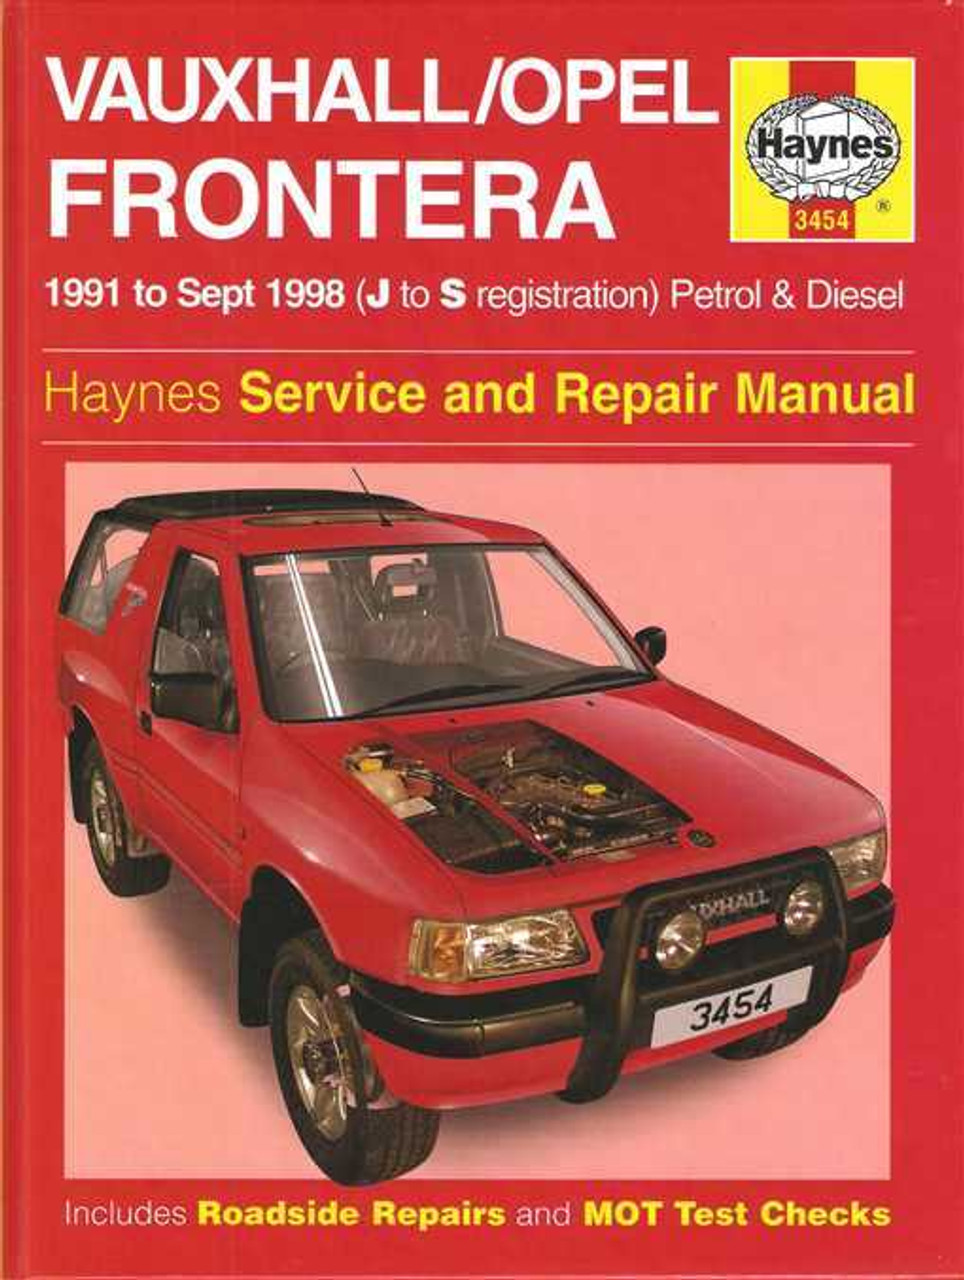 Holden frontera petrol and diesel 1991 1998 workshop manual fandeluxe Image collections